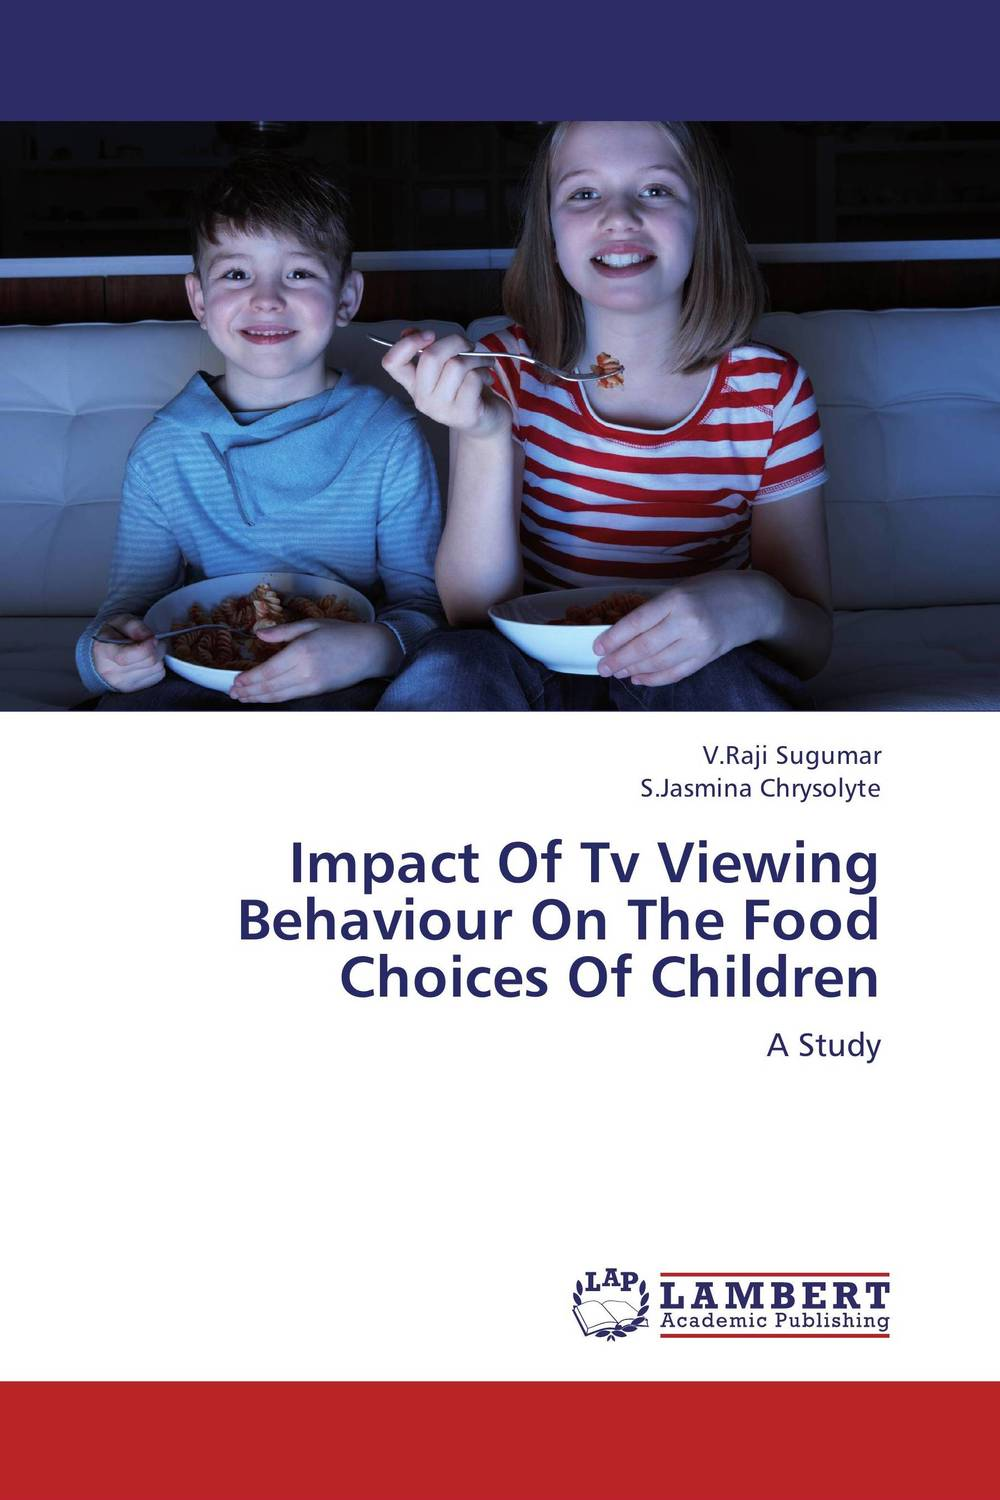 Impact Of Tv Viewing Behaviour On The  Food Choices Of Children p susai manickam college going youth and values a study from the tv impact perspective